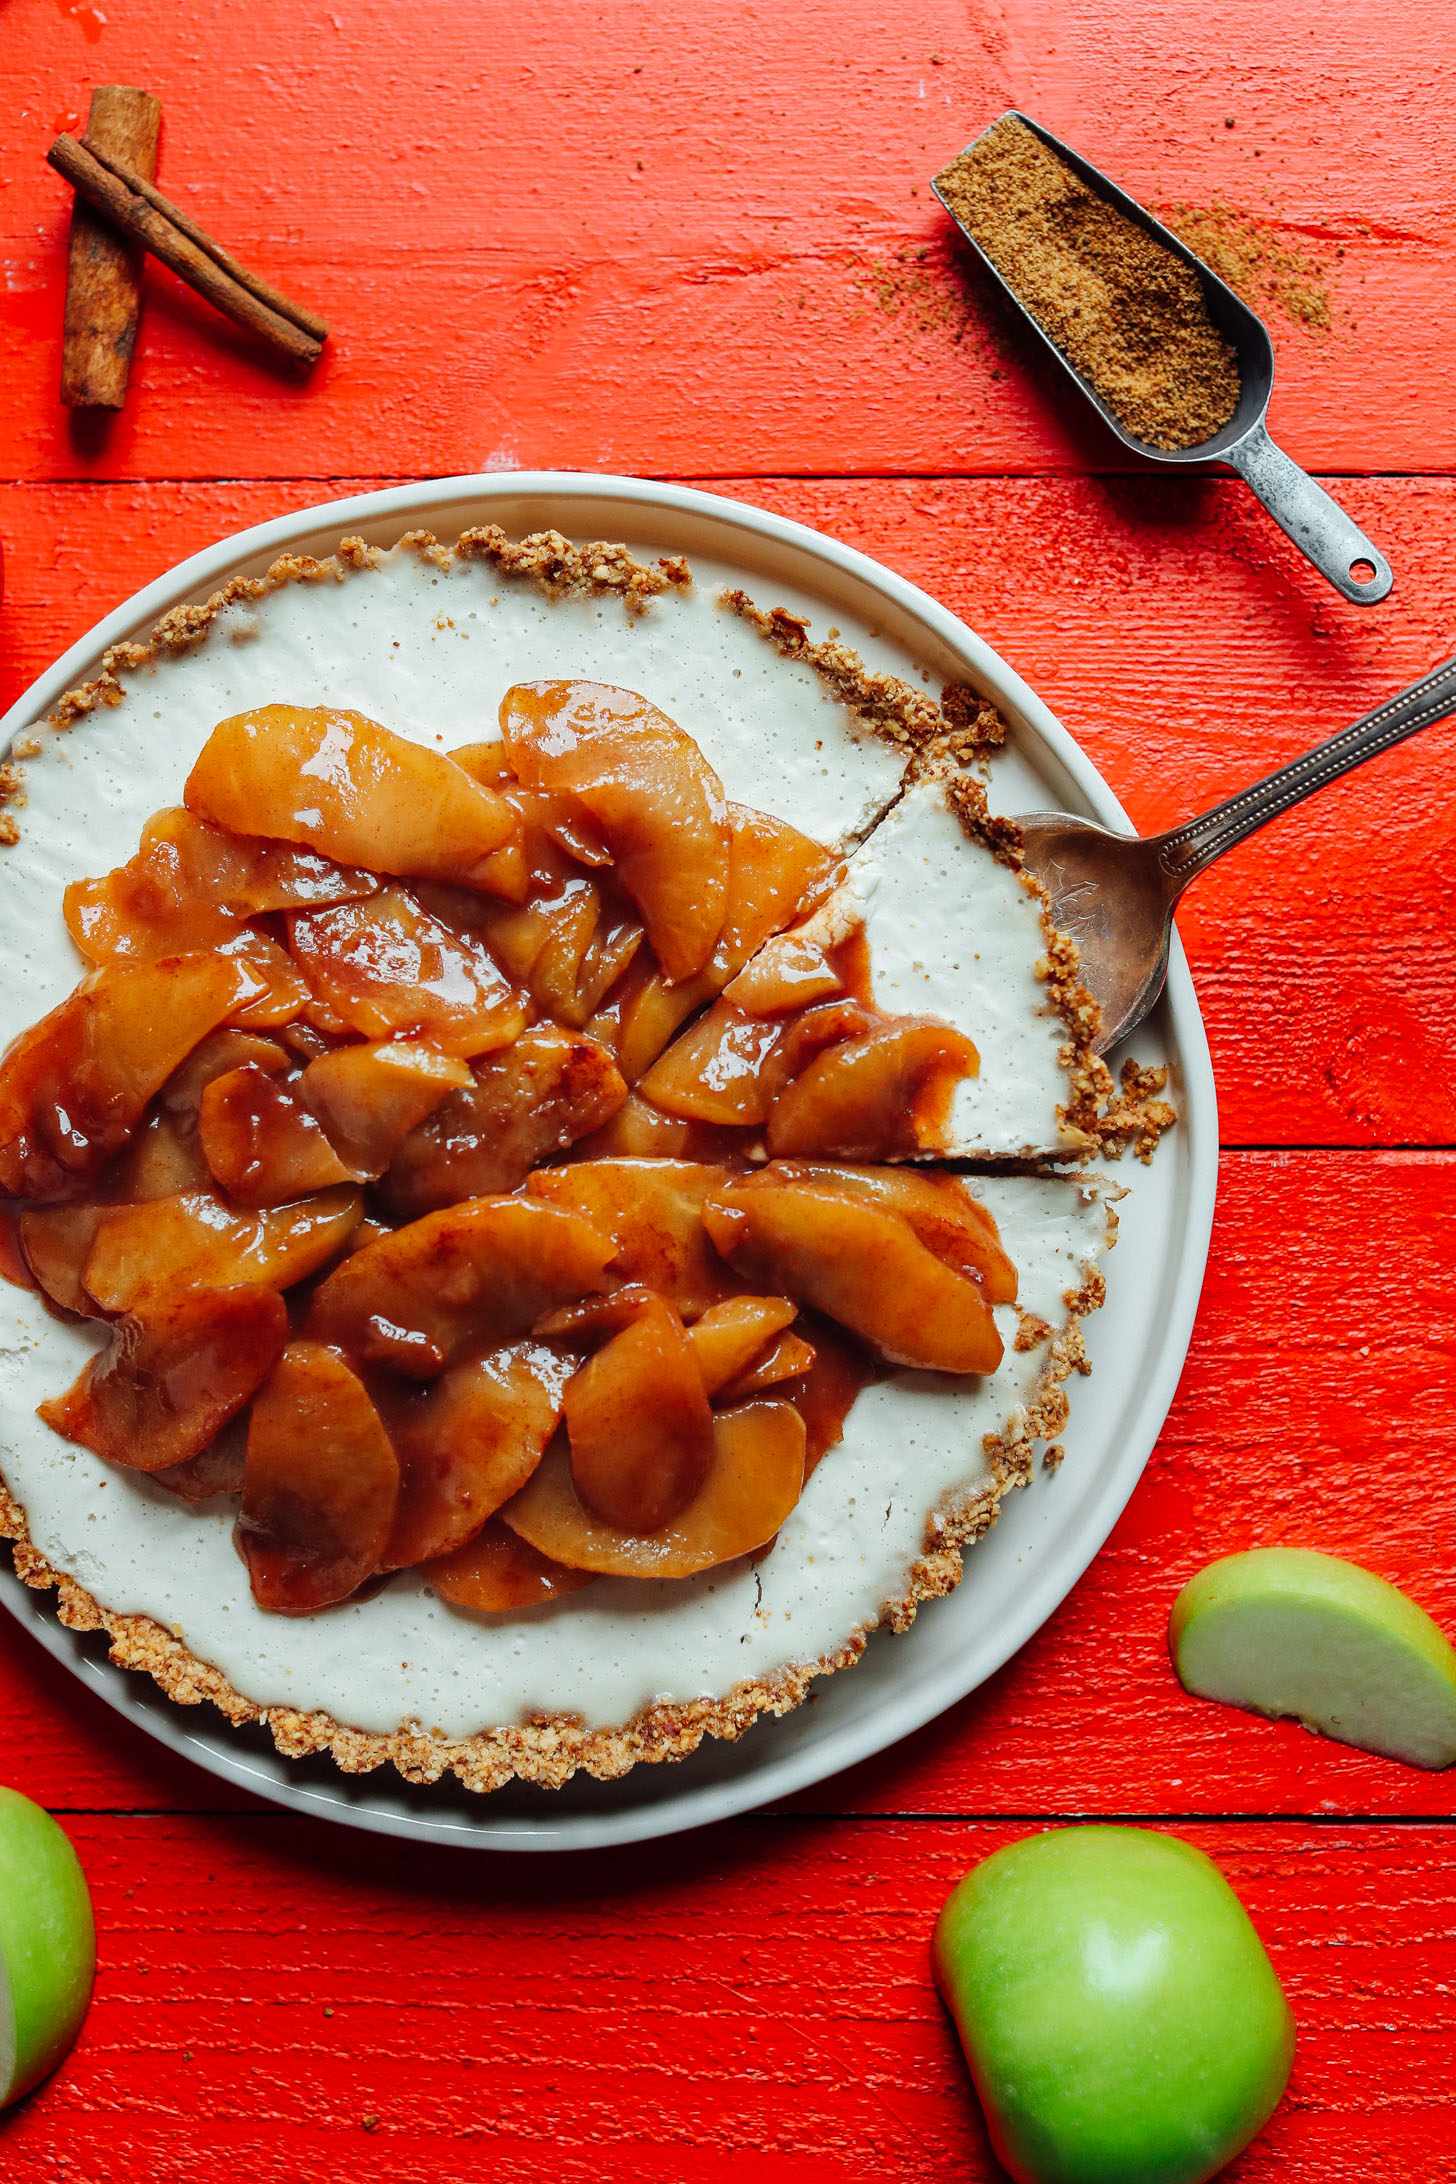 Grabbing a slice of delicious, naturally sweetened Caramel Apple Tart from the serving platter